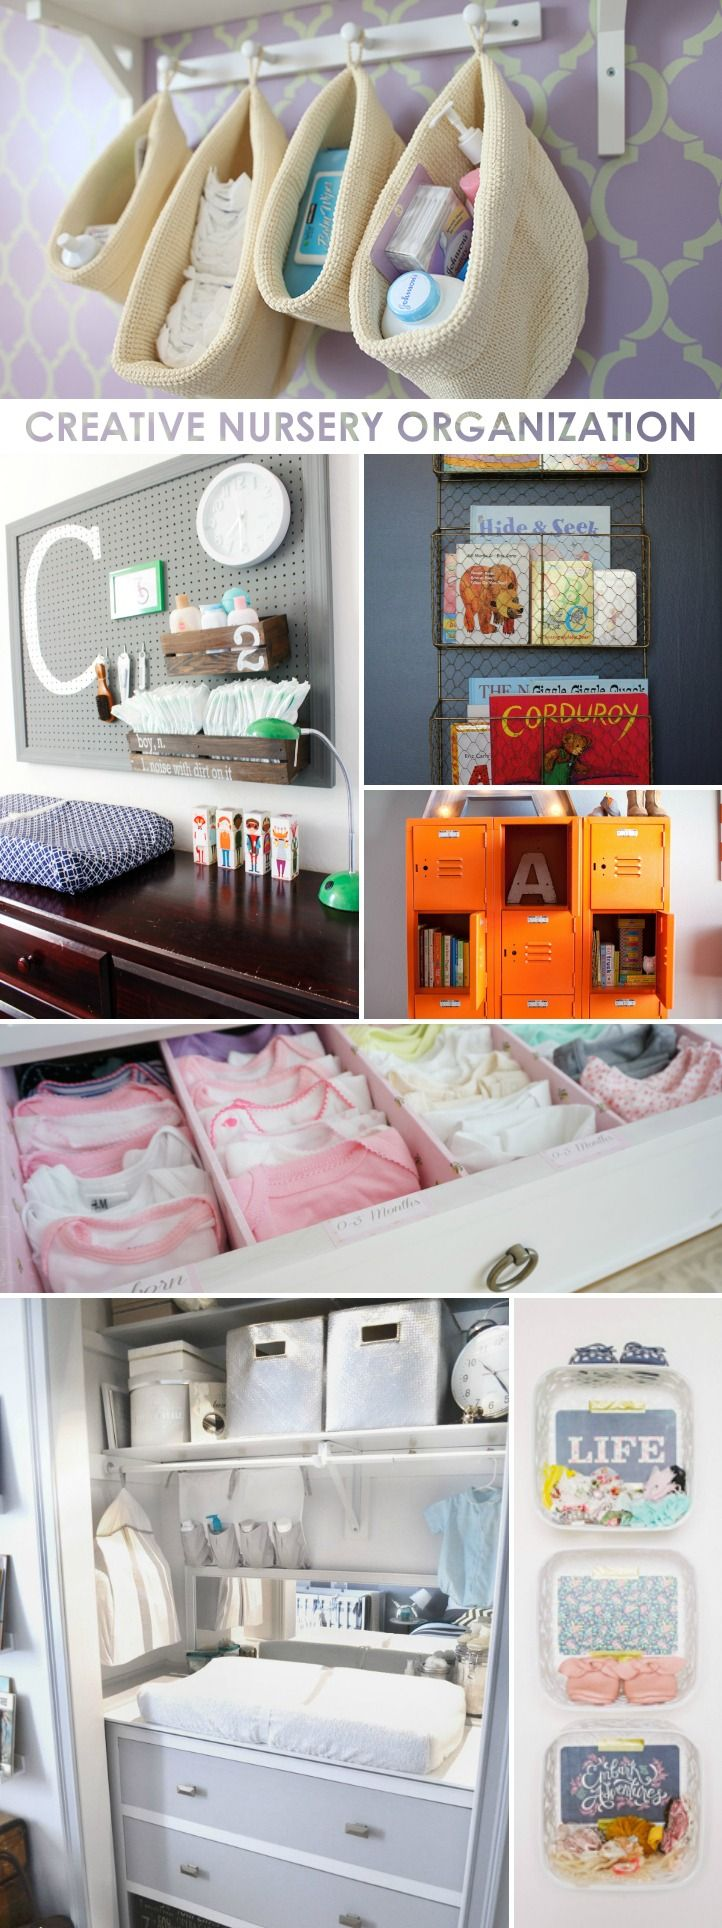 Creative Nursery Organization Ideas | ProjectNursery.com. I like the mirror behind the changing table.